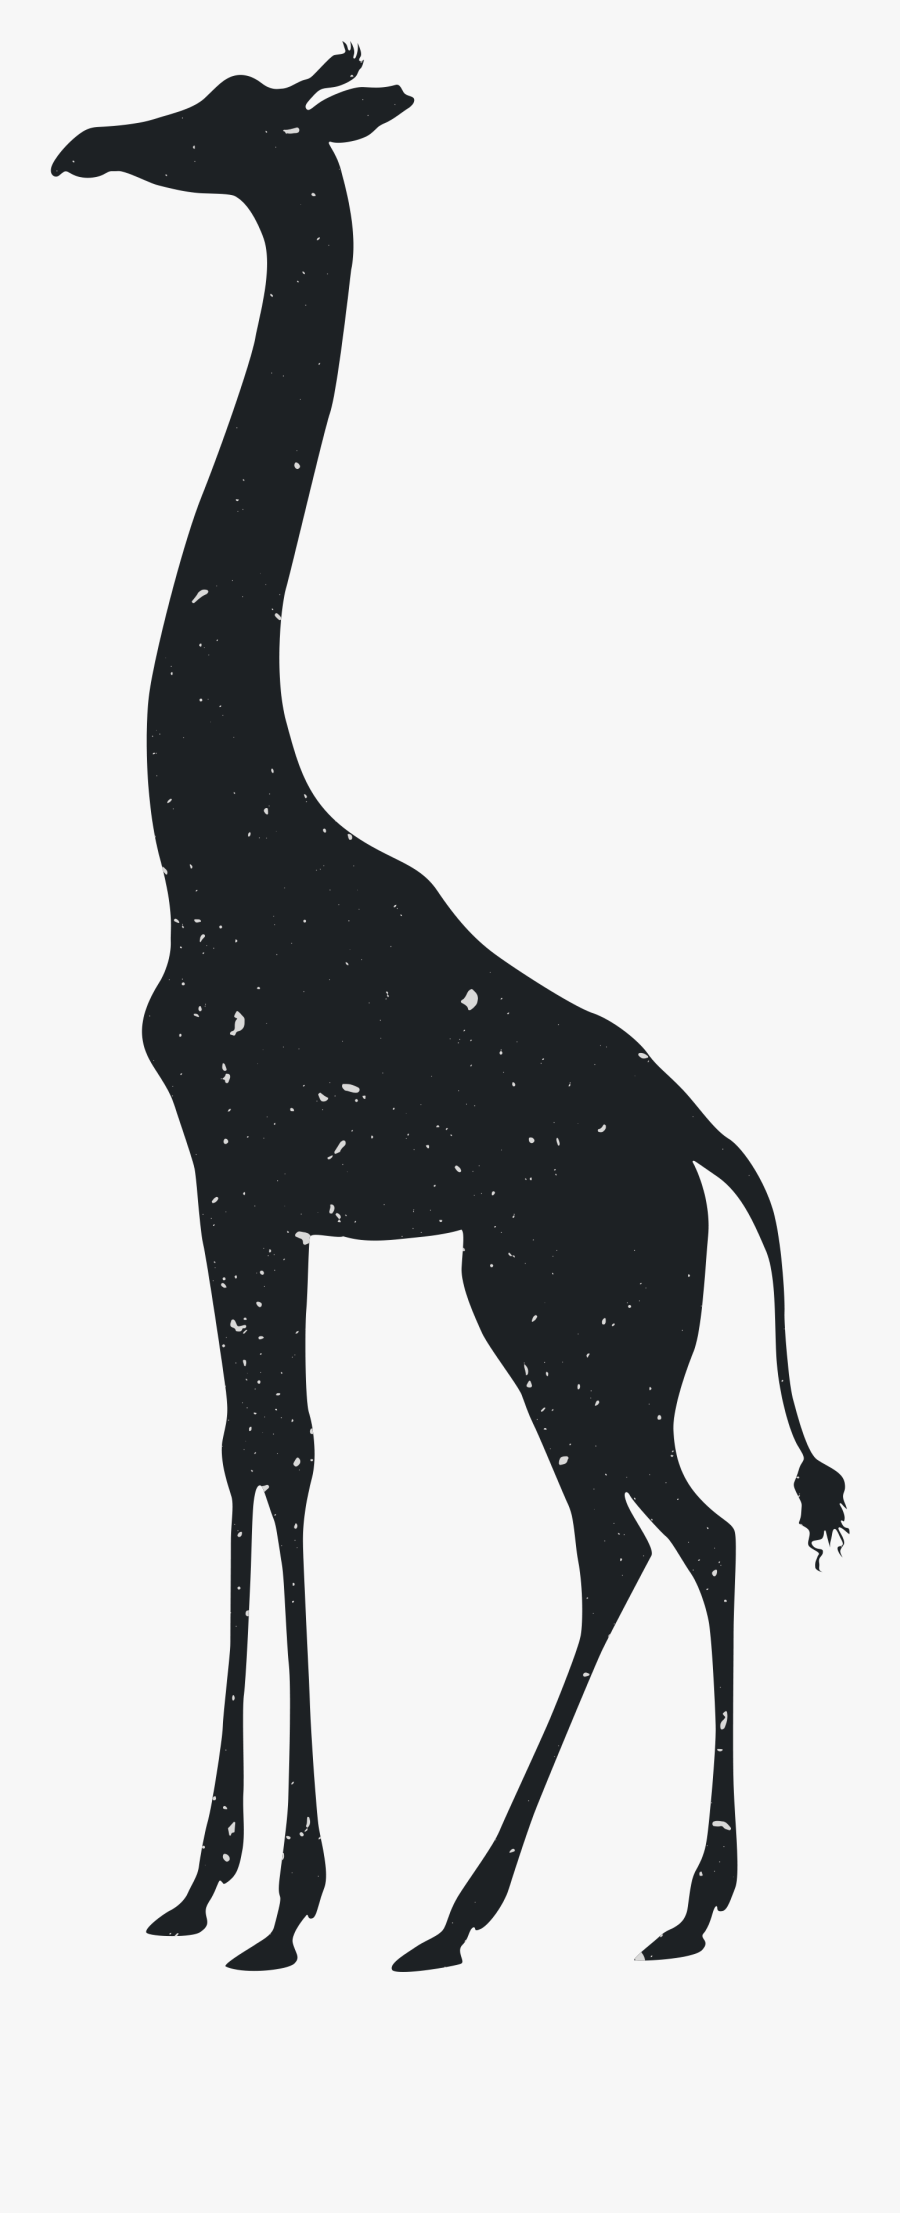 Clip Art Collection Of Free Transparent - Free Silhouette Zoo Animals, Transparent Clipart